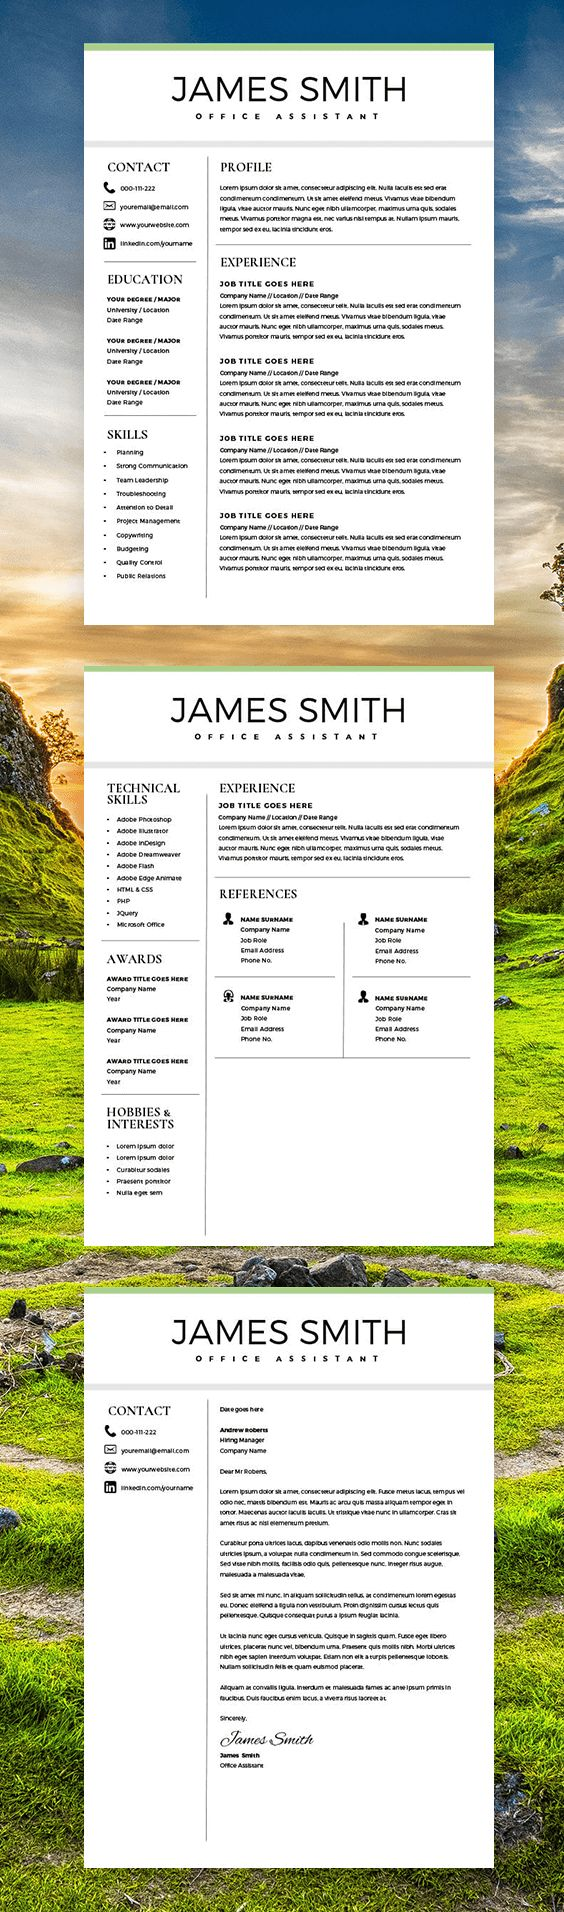 classic resume professional resume template for word pages 2 pages resume cover - How Do You Write A Cover Letter For A Resume